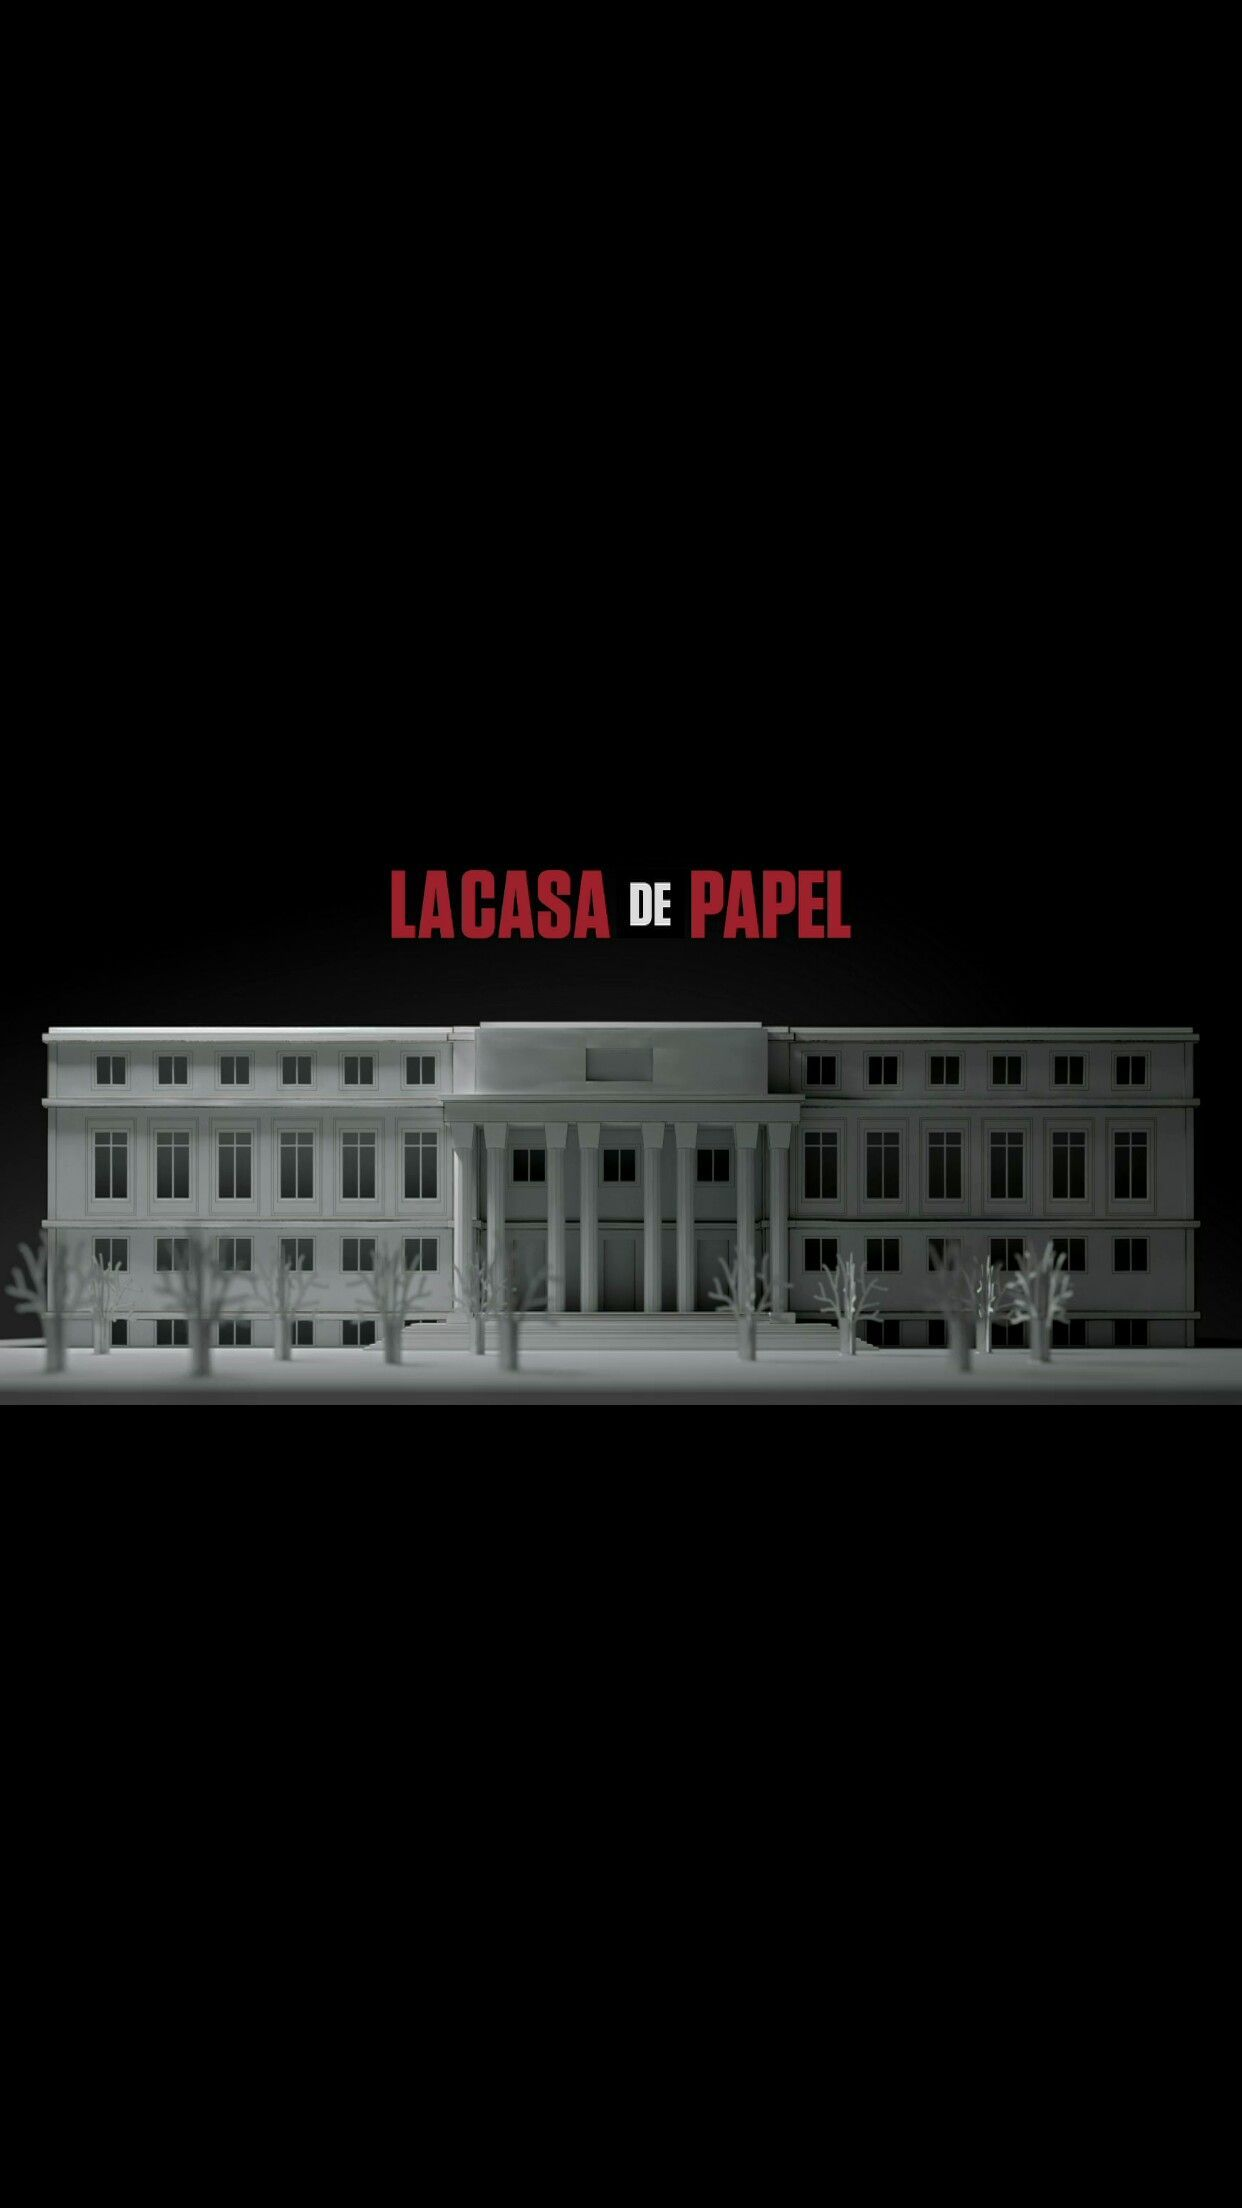 La Casa De Papel Wallpaper Lisbon In 2020 Photo Room Phone